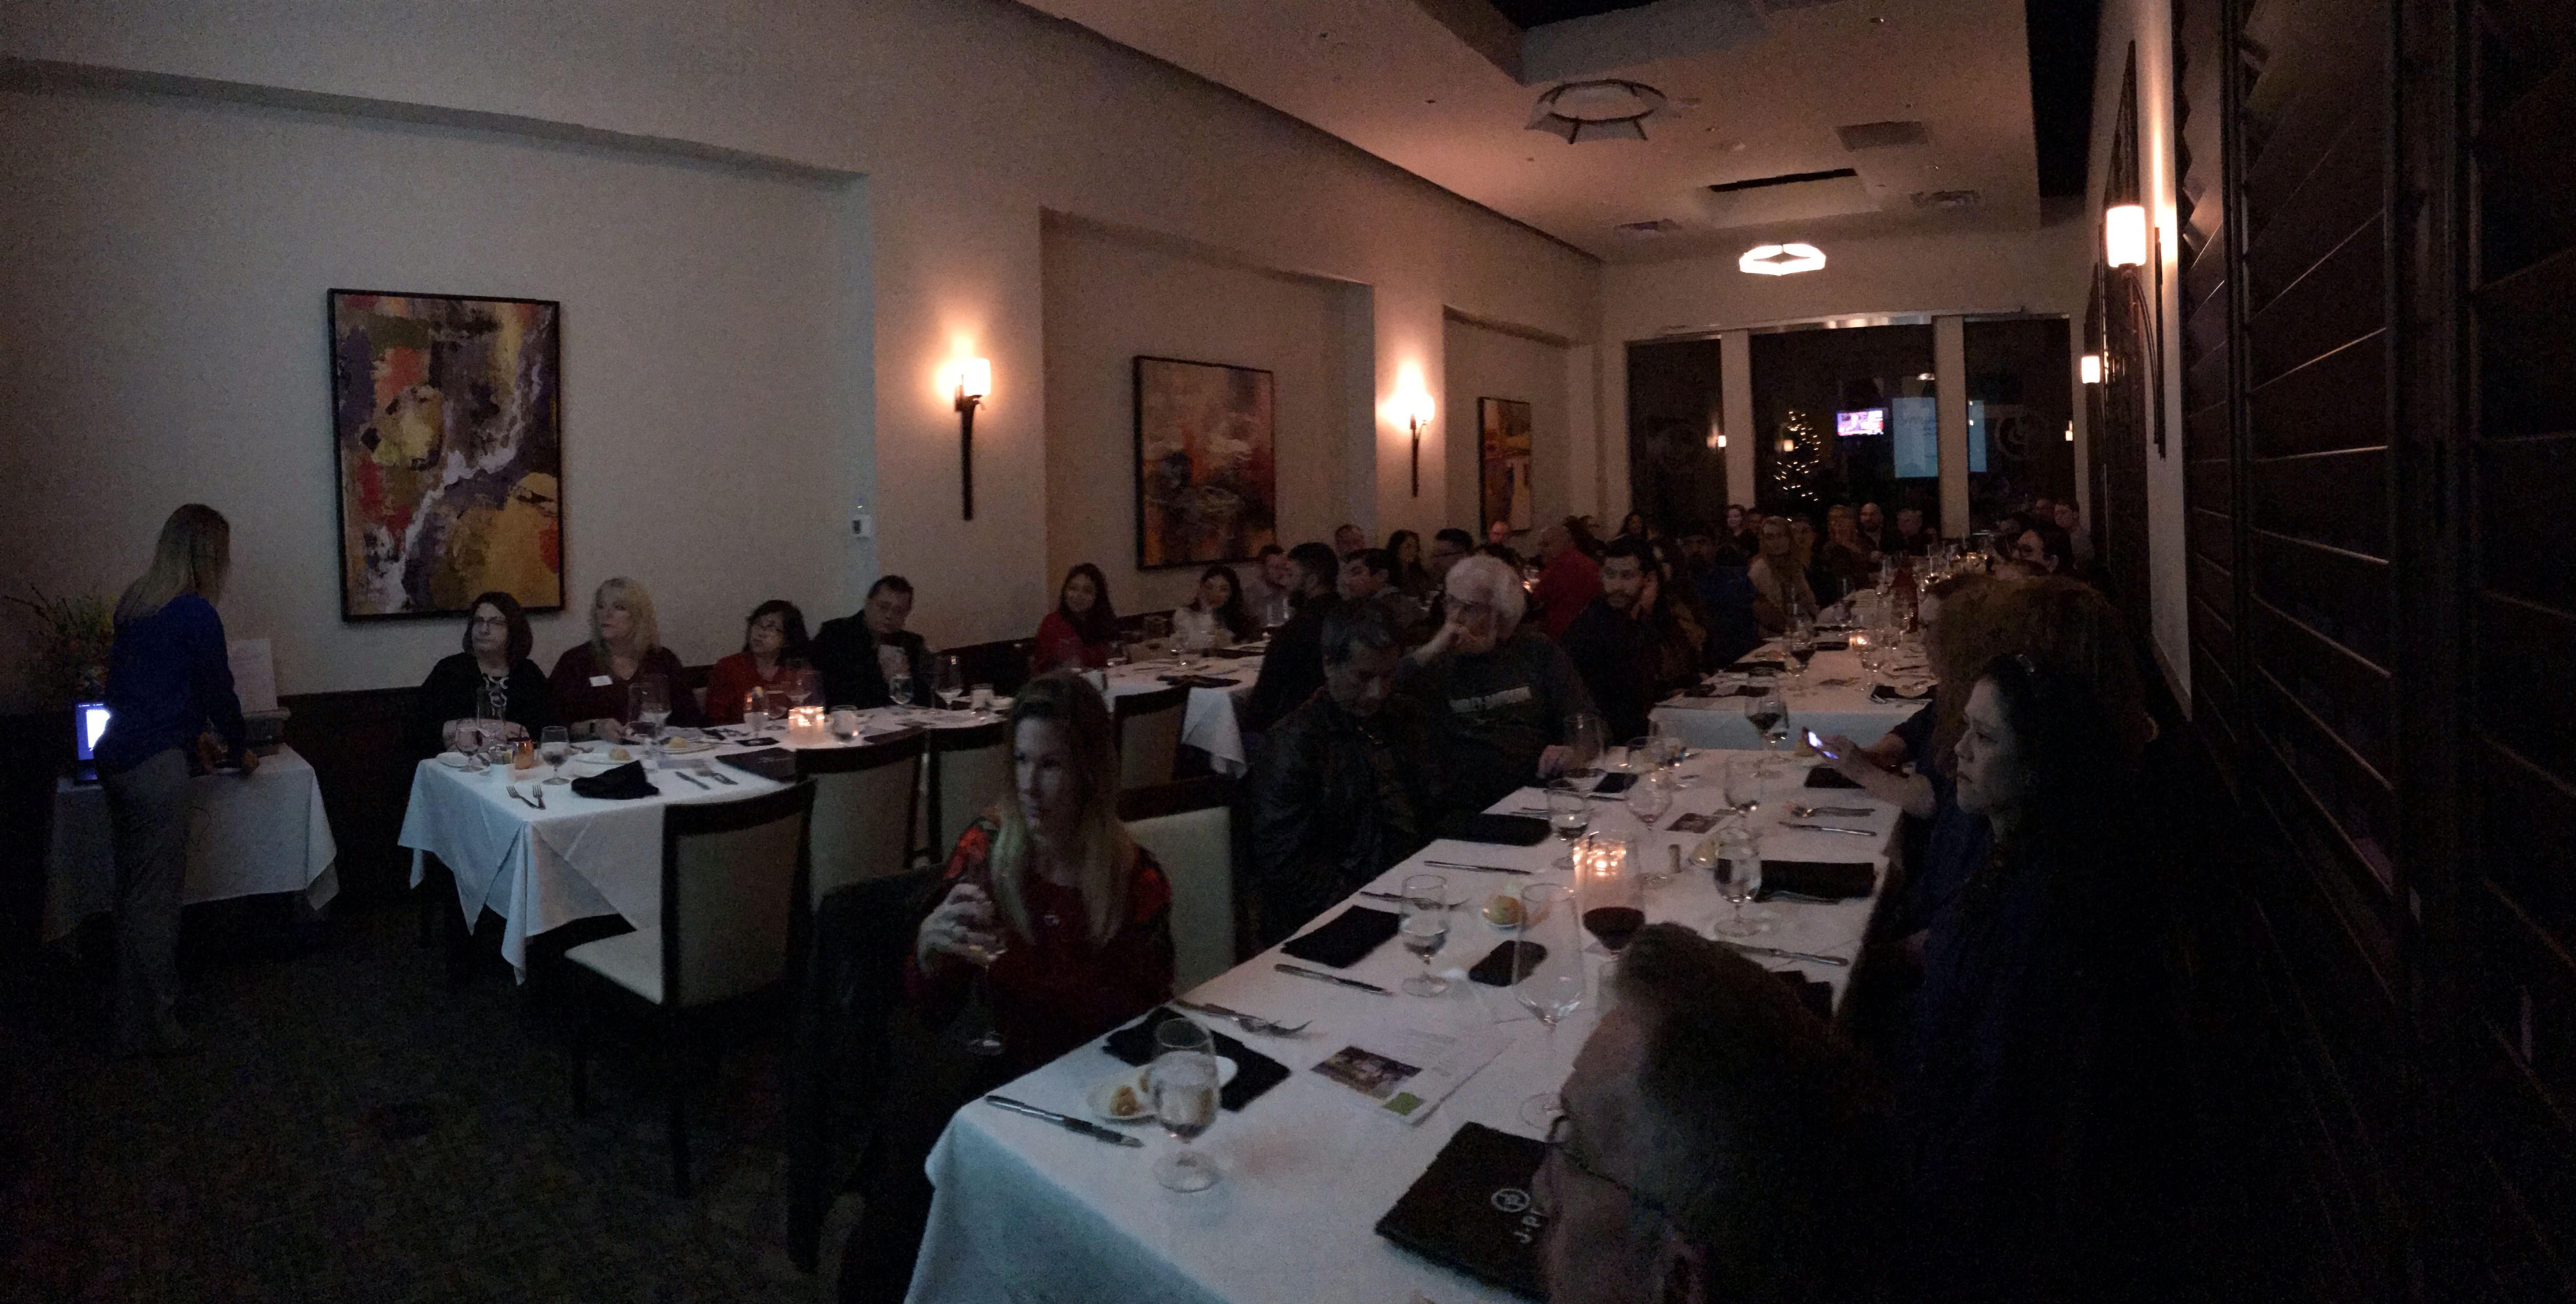 An incredible turnout more than 60 IPs, VA specialists